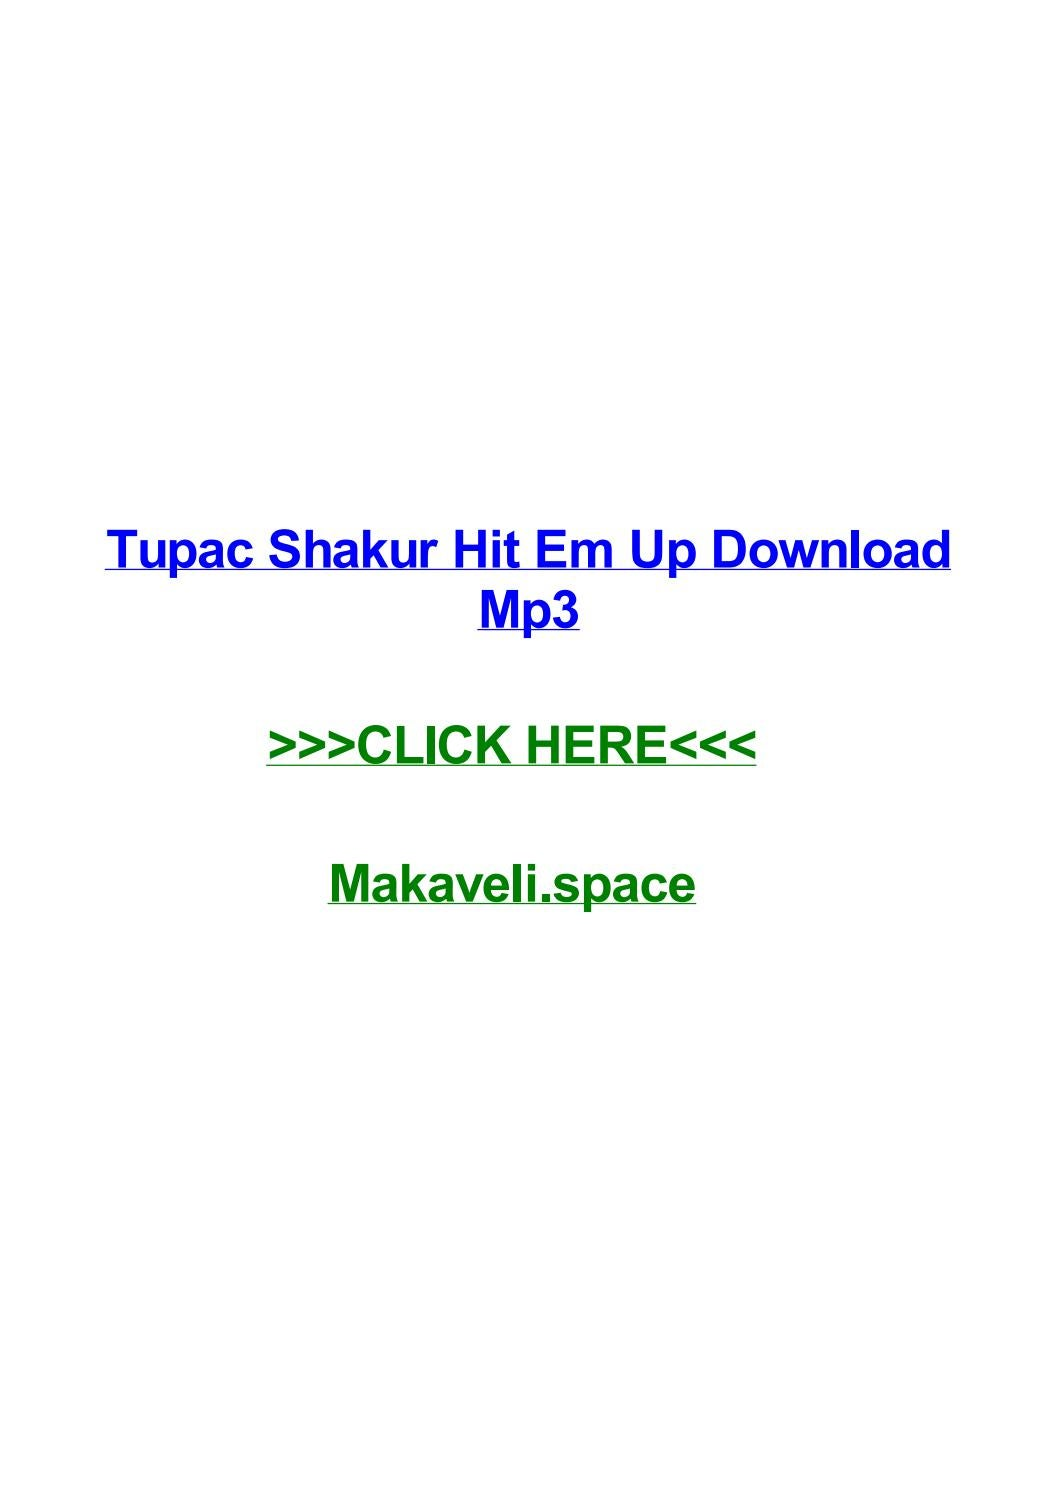 Tupac shakur hit em up download mp3 by normarryo - issuu